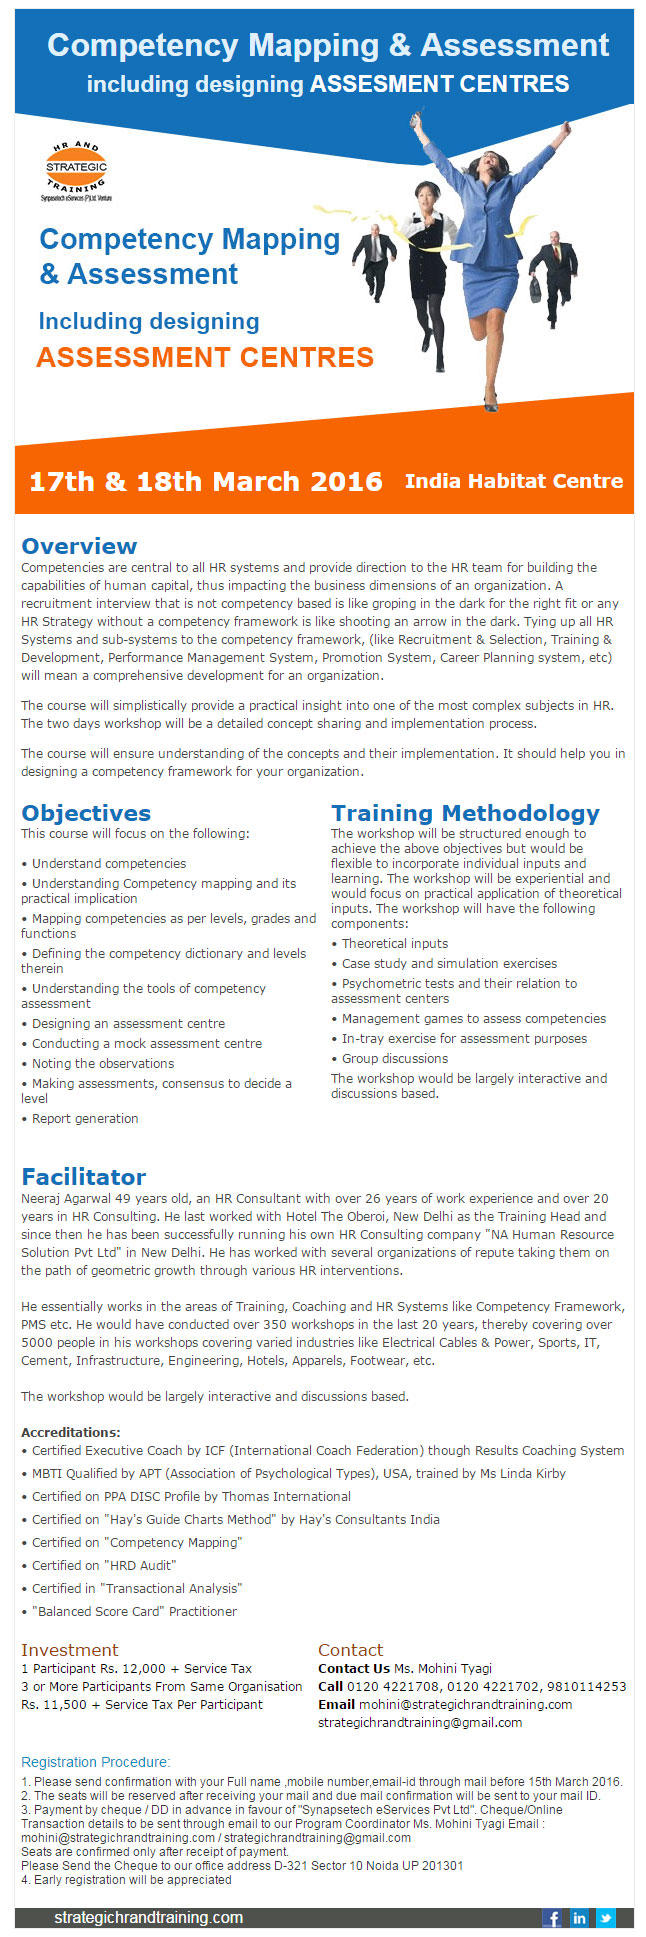 strategichrandtrainings - Competency Mapping & Assessment